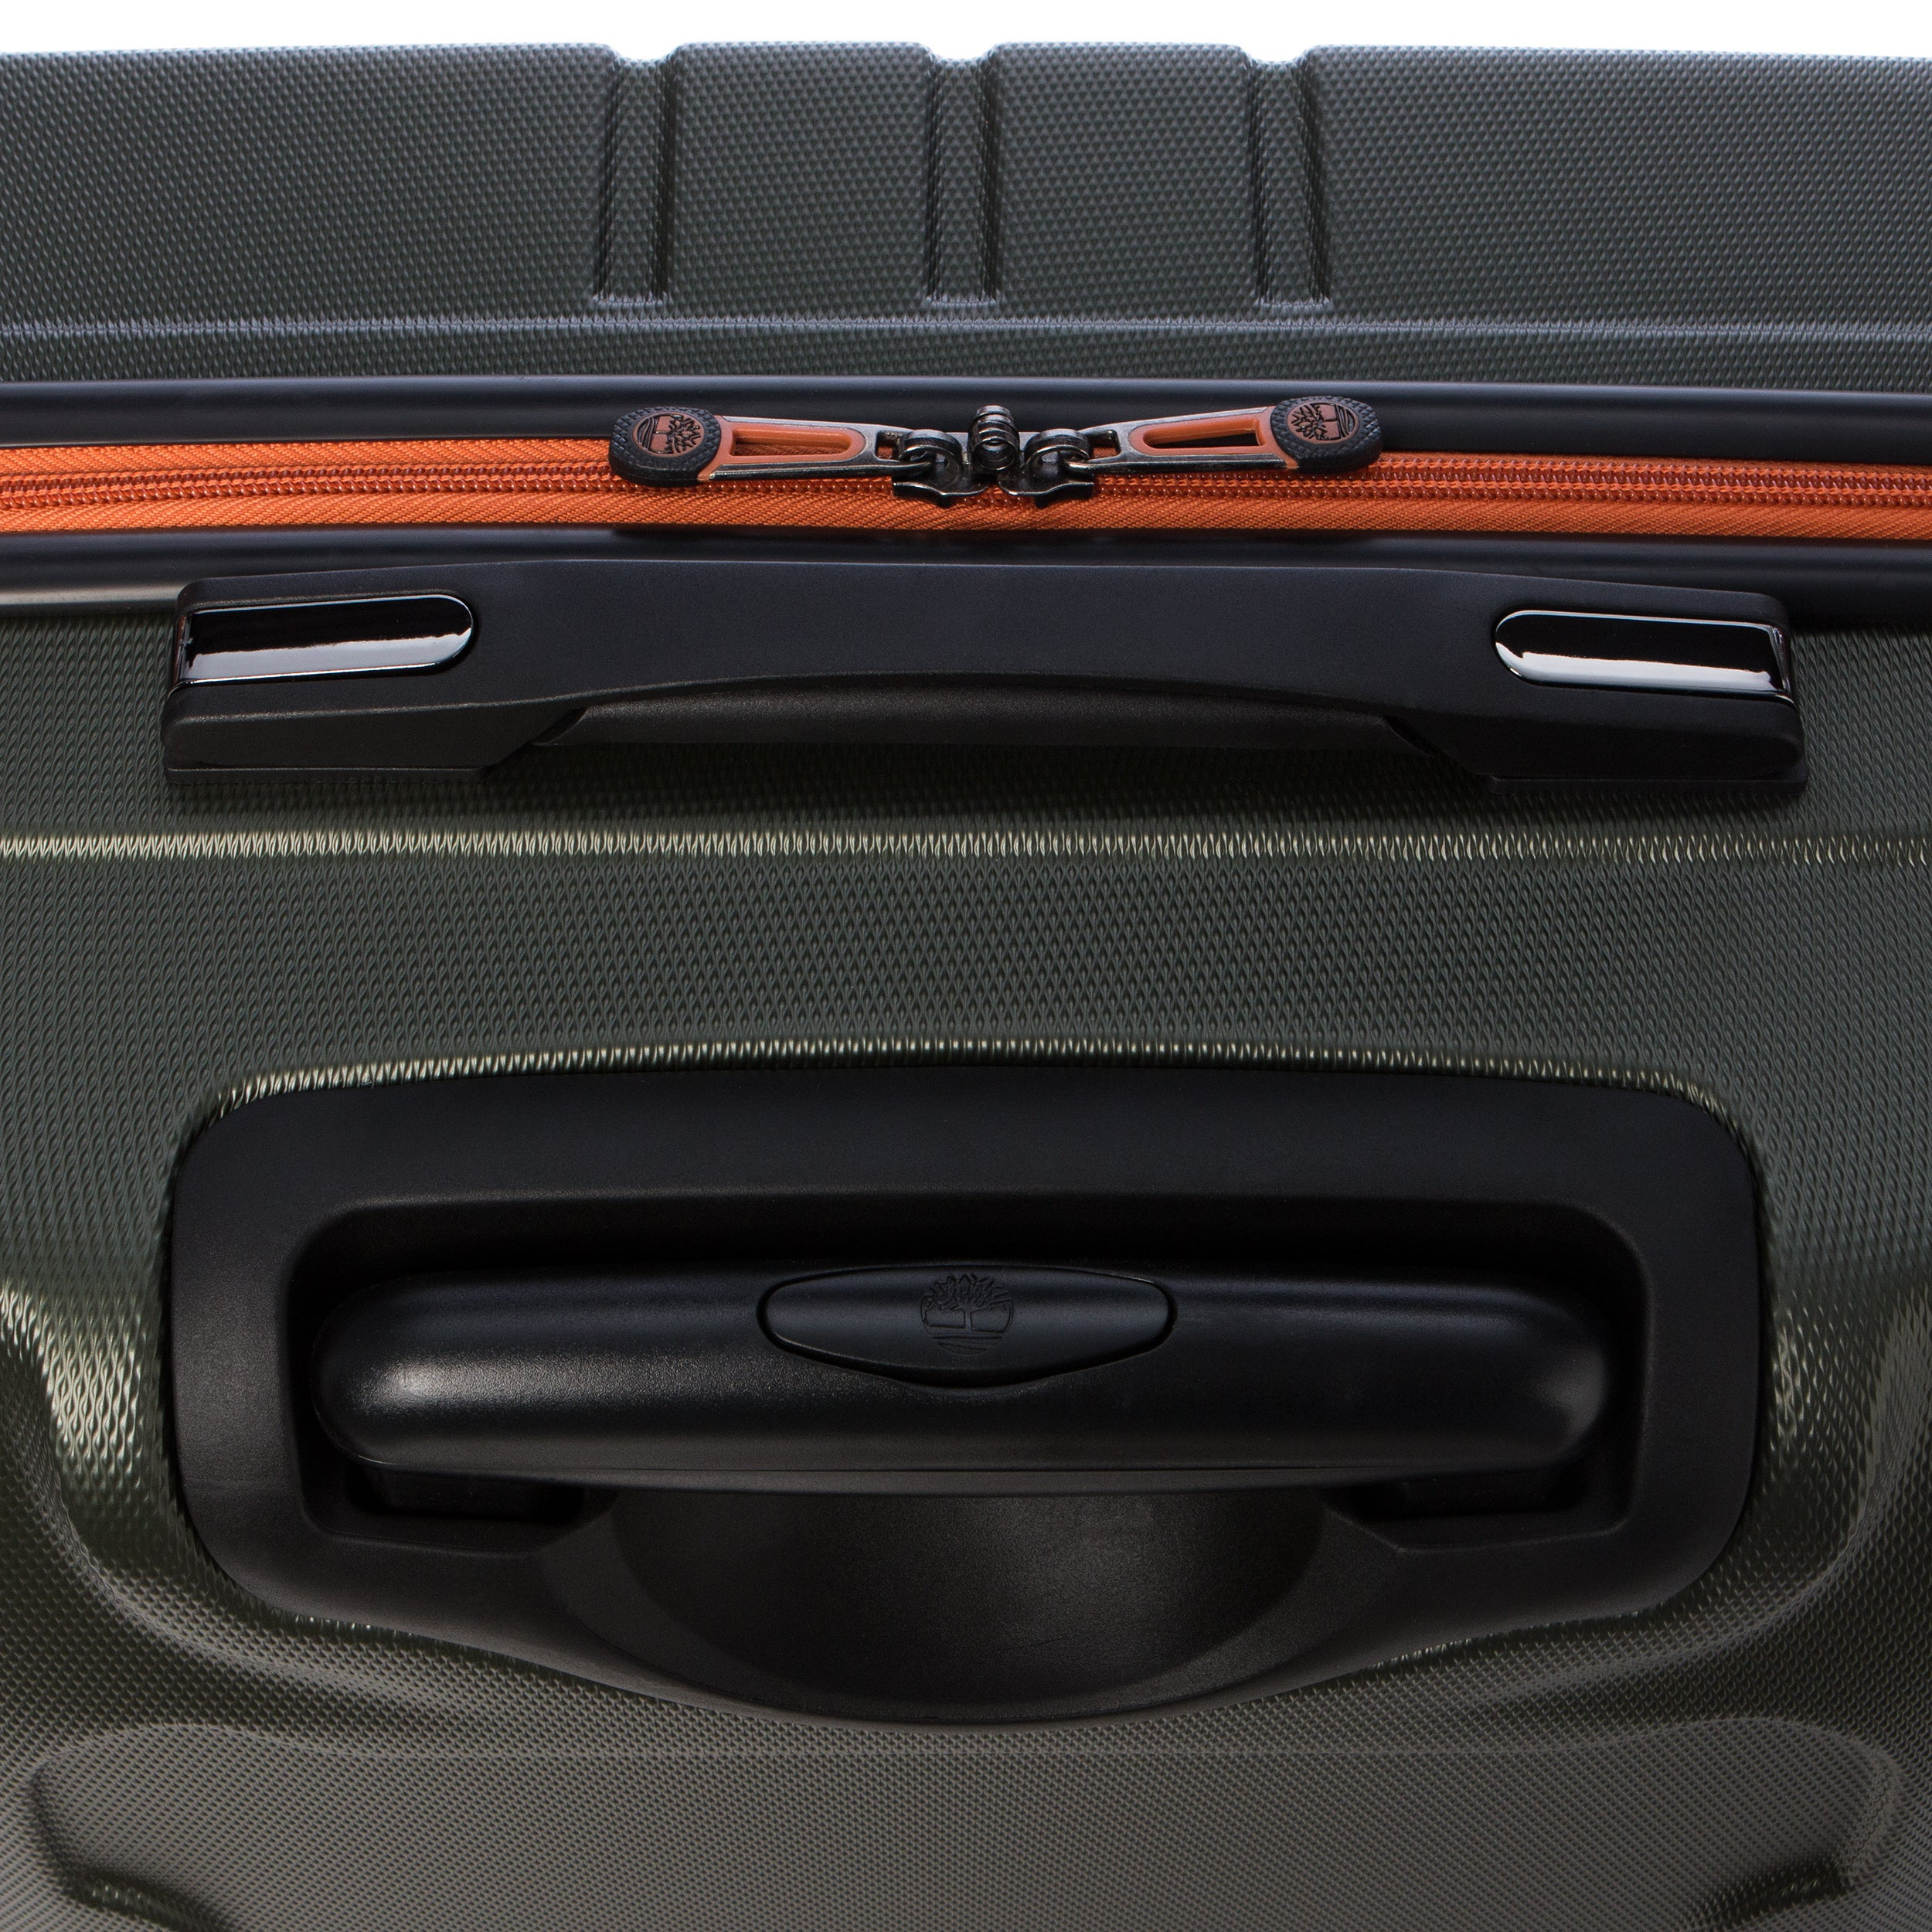 1b0ce876e0f Shop Timberland Boscawen 3-piece Hardside Spinner Luggage Set - Free  Shipping Today - Overstock - 8650286